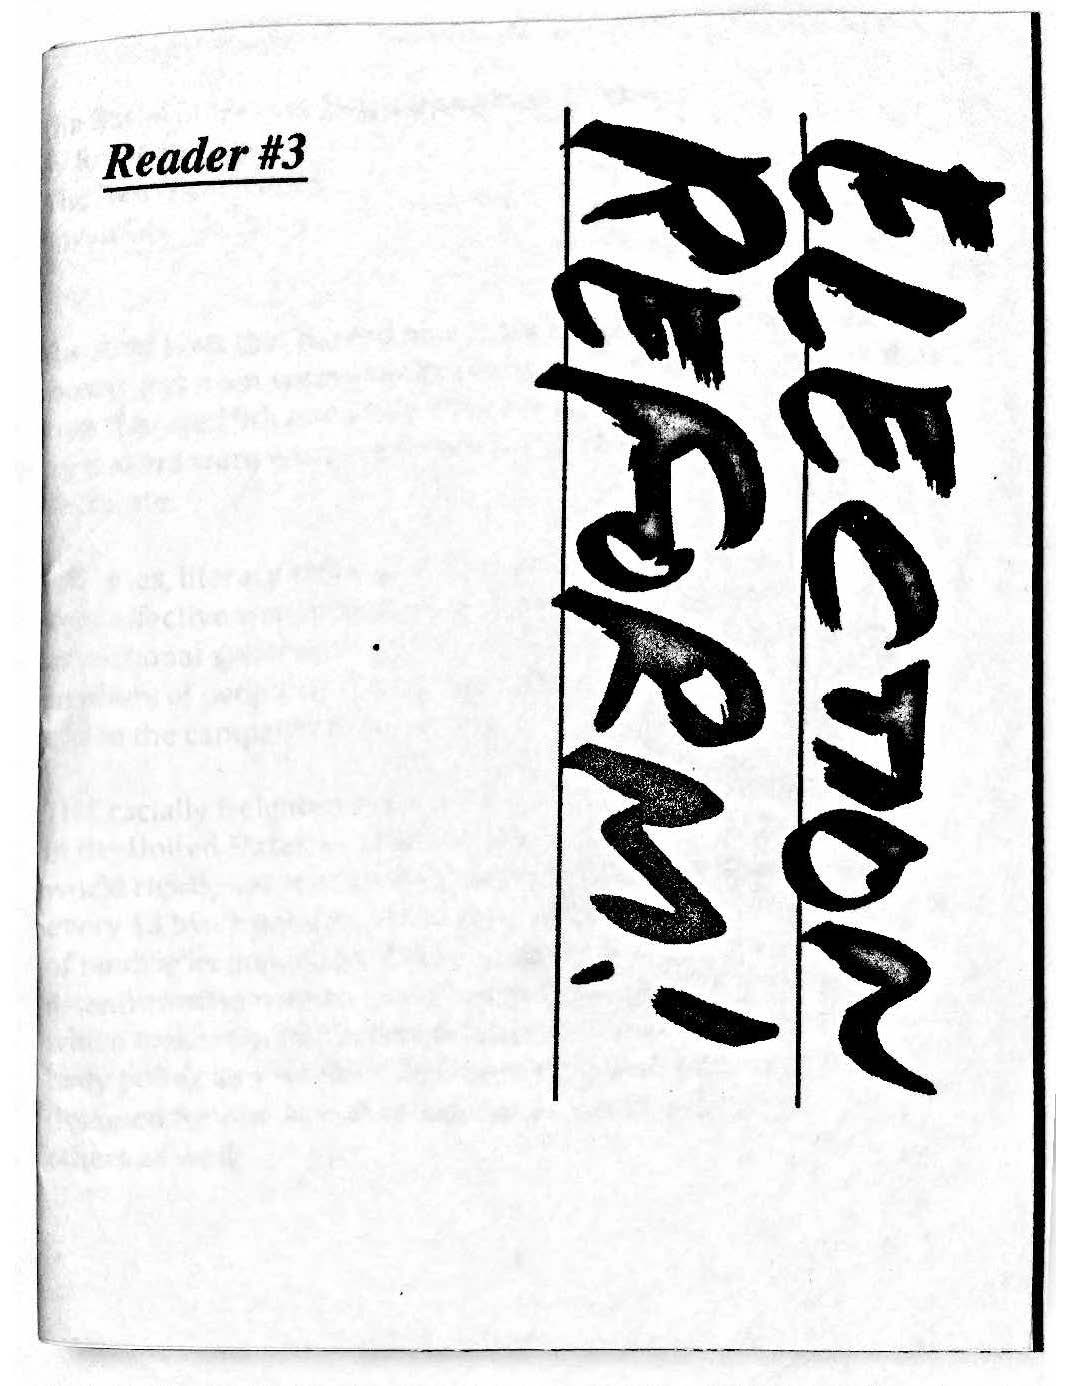 Election Reform zine